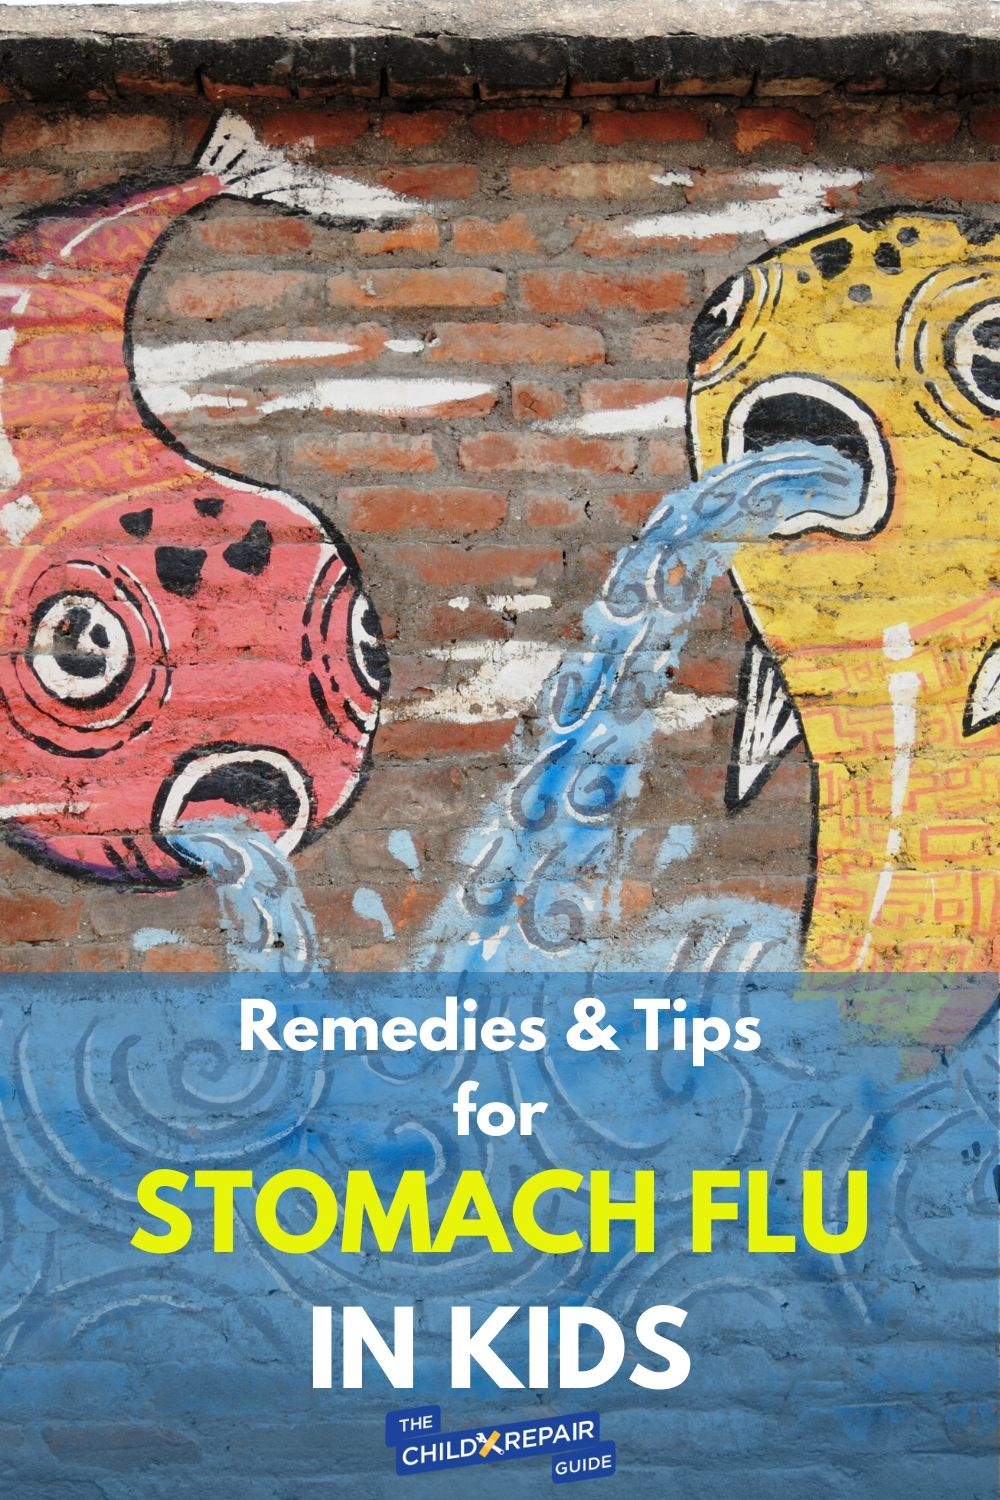 Remedies, what to watch for, what to expect, and how to make your little one feel better when she has the stomach flu! #homeremedies #whentocallthedoctor #vomiting #diarrhea #stomachflu #stomachbug #stomachvirus #gastroenteritis #pediatrician #kidshealth #kidhealth #healthykids